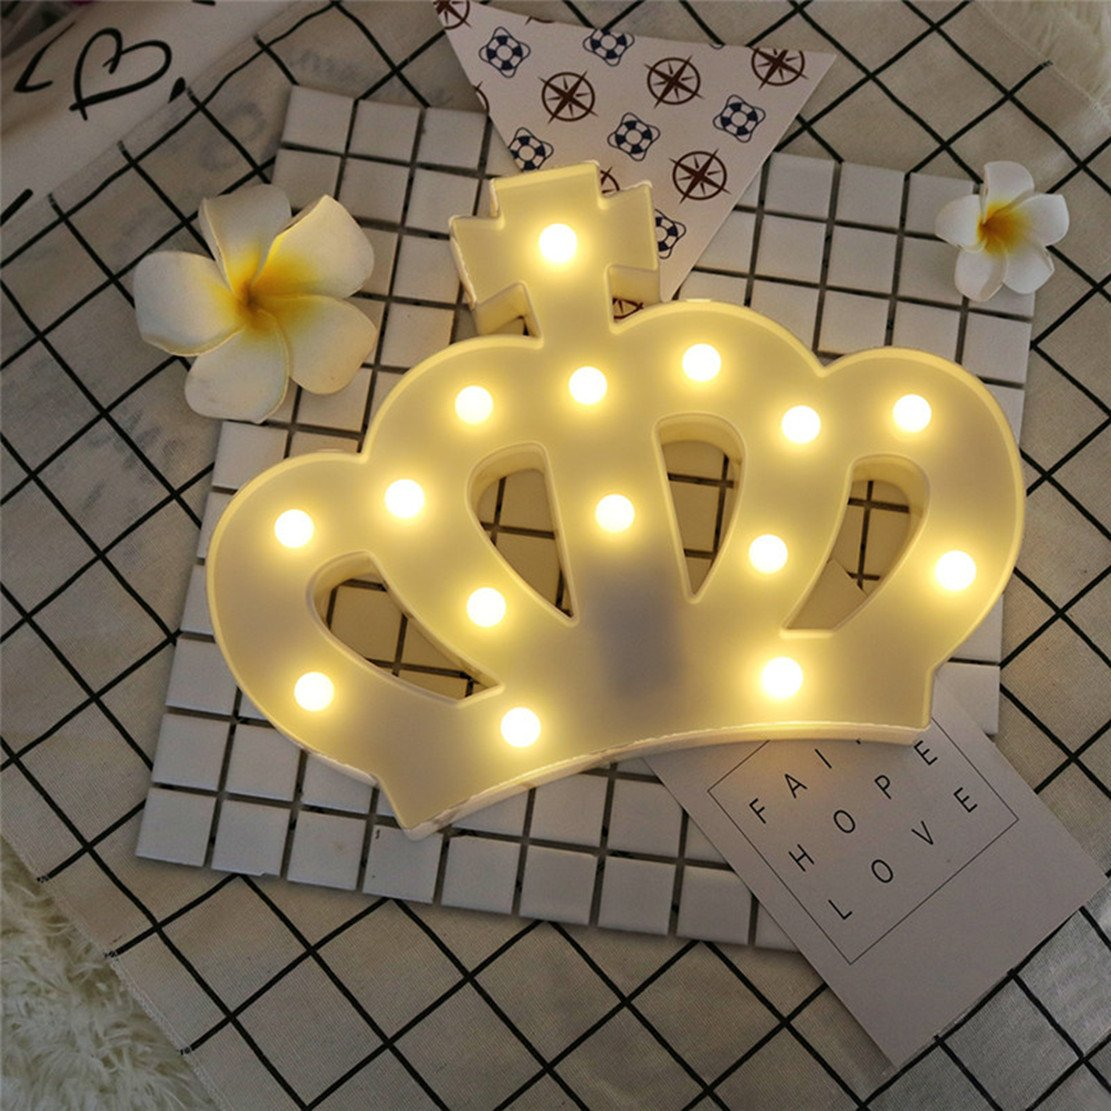 QiaoFei 3D Crown Marquee Sign Light,LED Queen Princess Kings Shaped Sign-Lighted,Wall Decor for Chistmas,Birthday party,Kids Room, Living Room, Wedding Party Decor(White) by QiaoFei (Image #7)